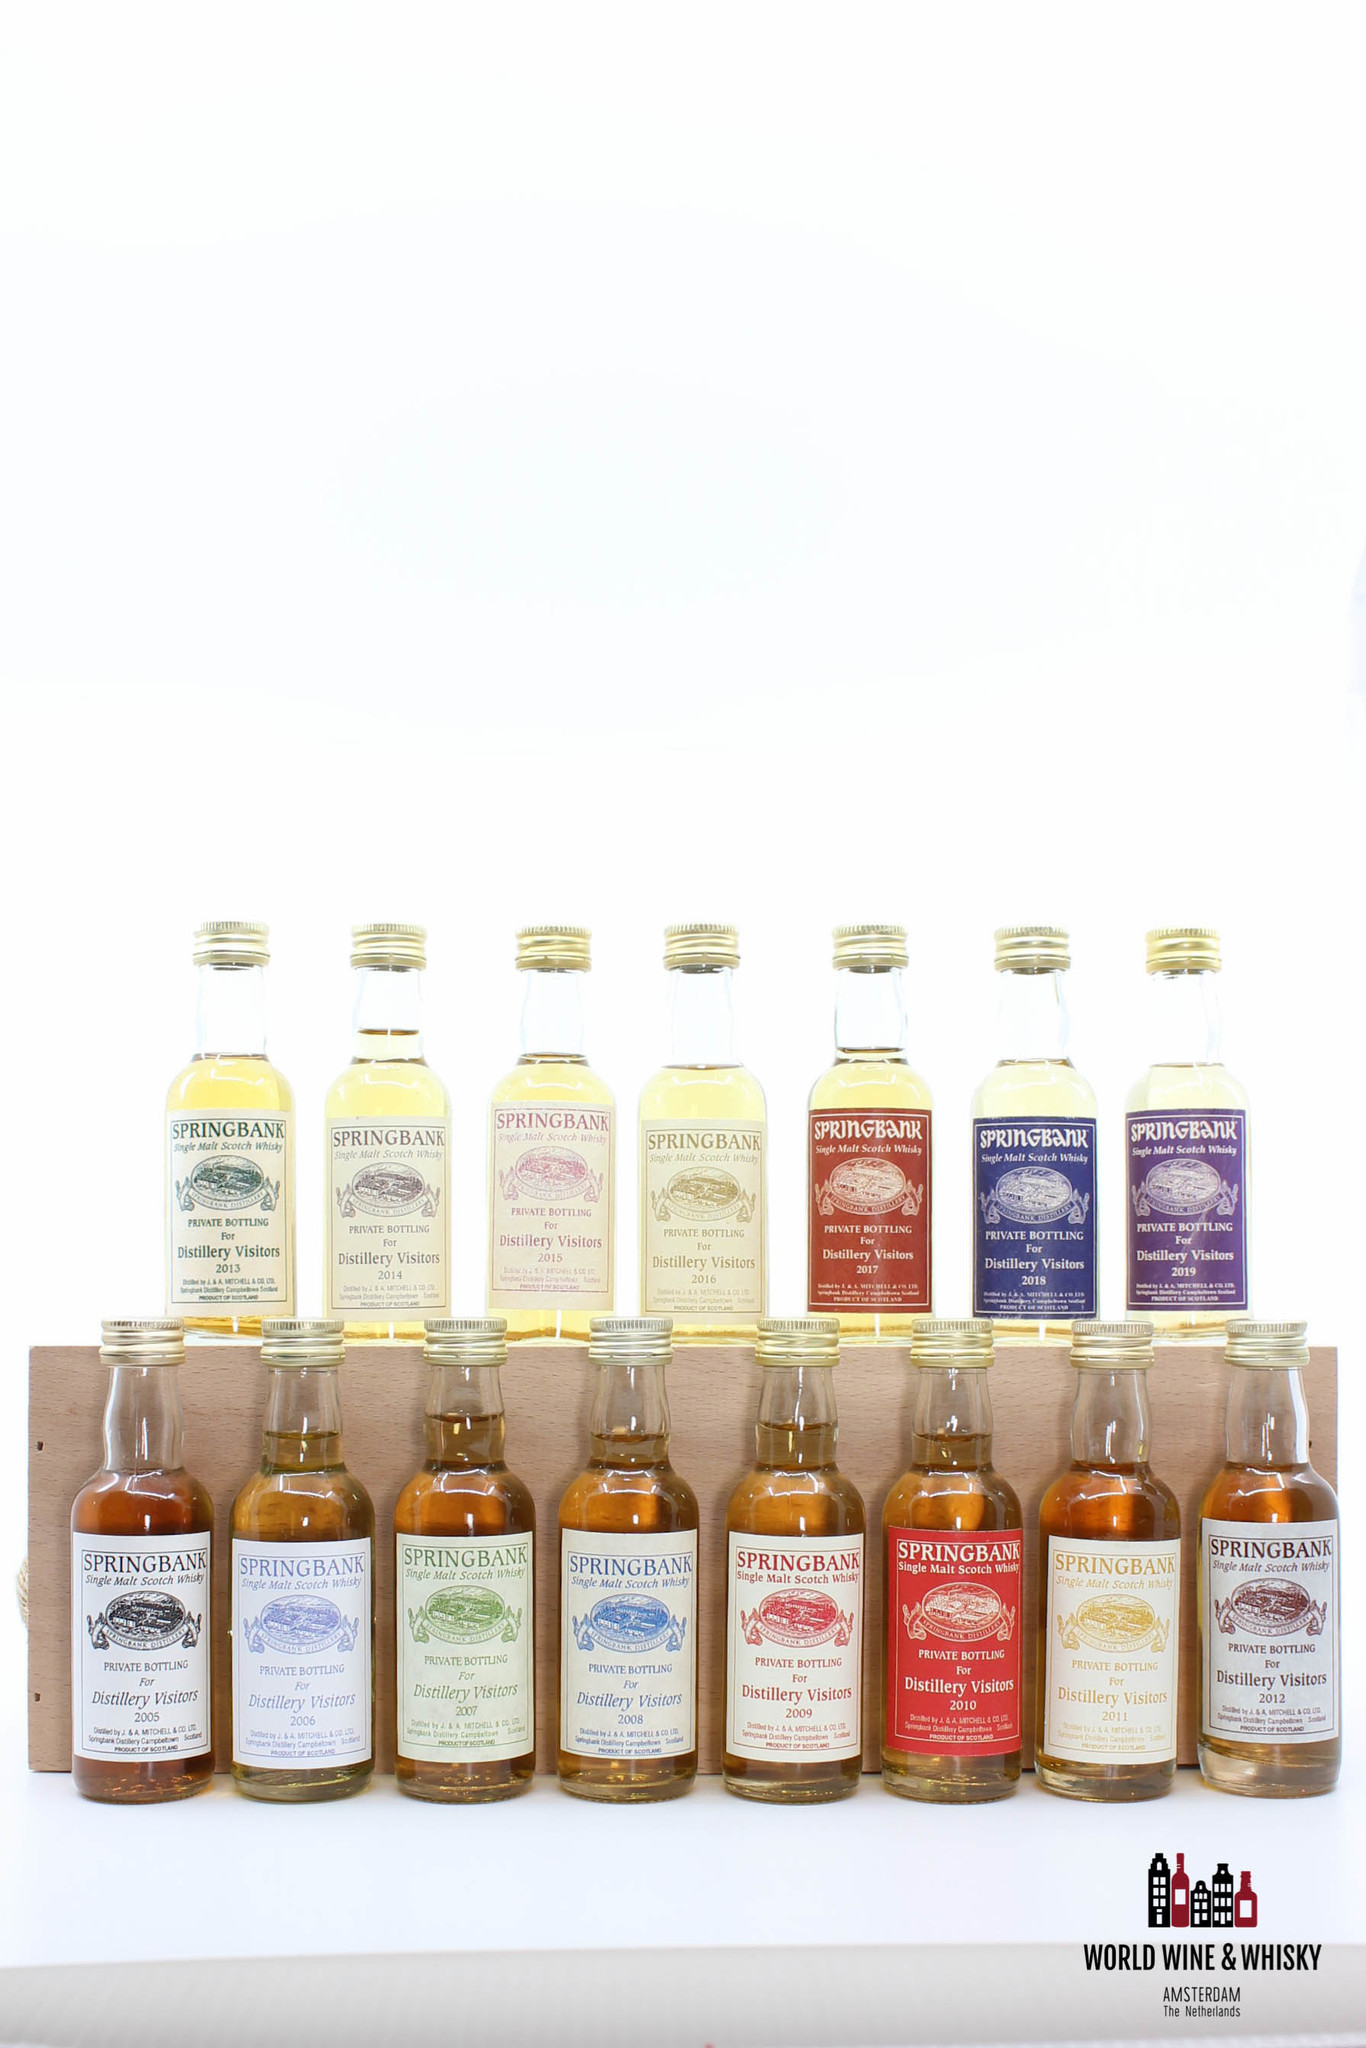 Springbank Full set Springbank Private Bottling for Distillery Visitors 2005 to 2019 (15 bottles)